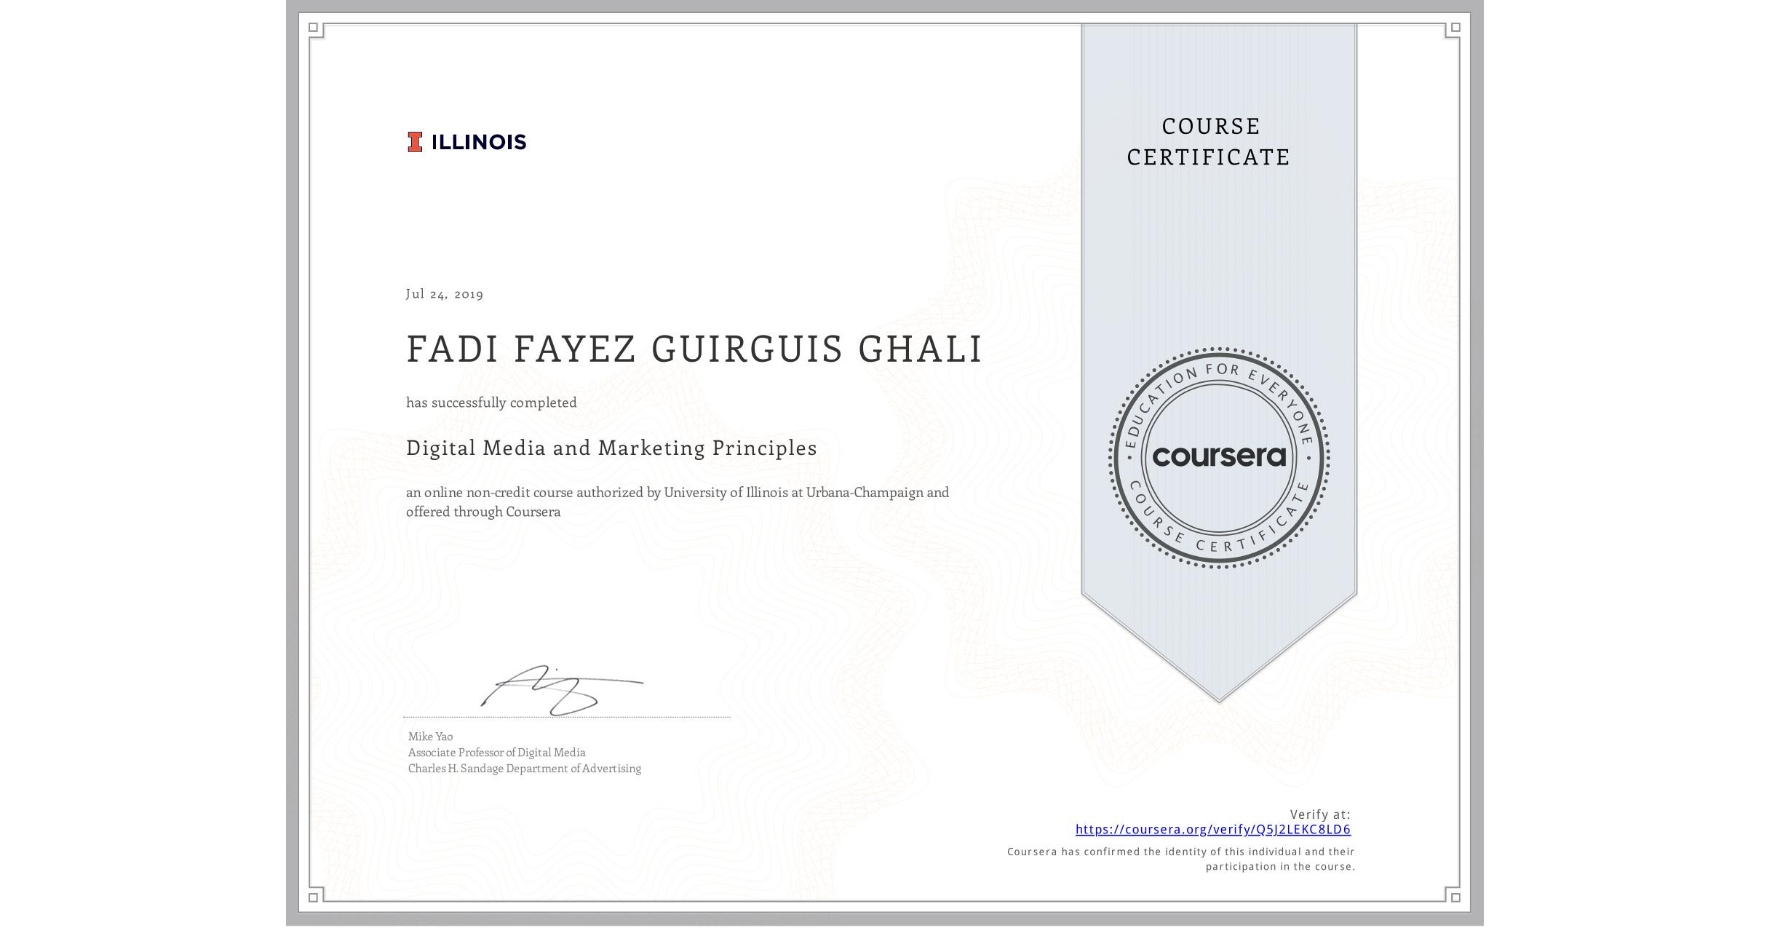 View certificate for FADI FAYEZ GUIRGUIS  GHALI, Digital Media and Marketing Principles, an online non-credit course authorized by University of Illinois at Urbana-Champaign and offered through Coursera